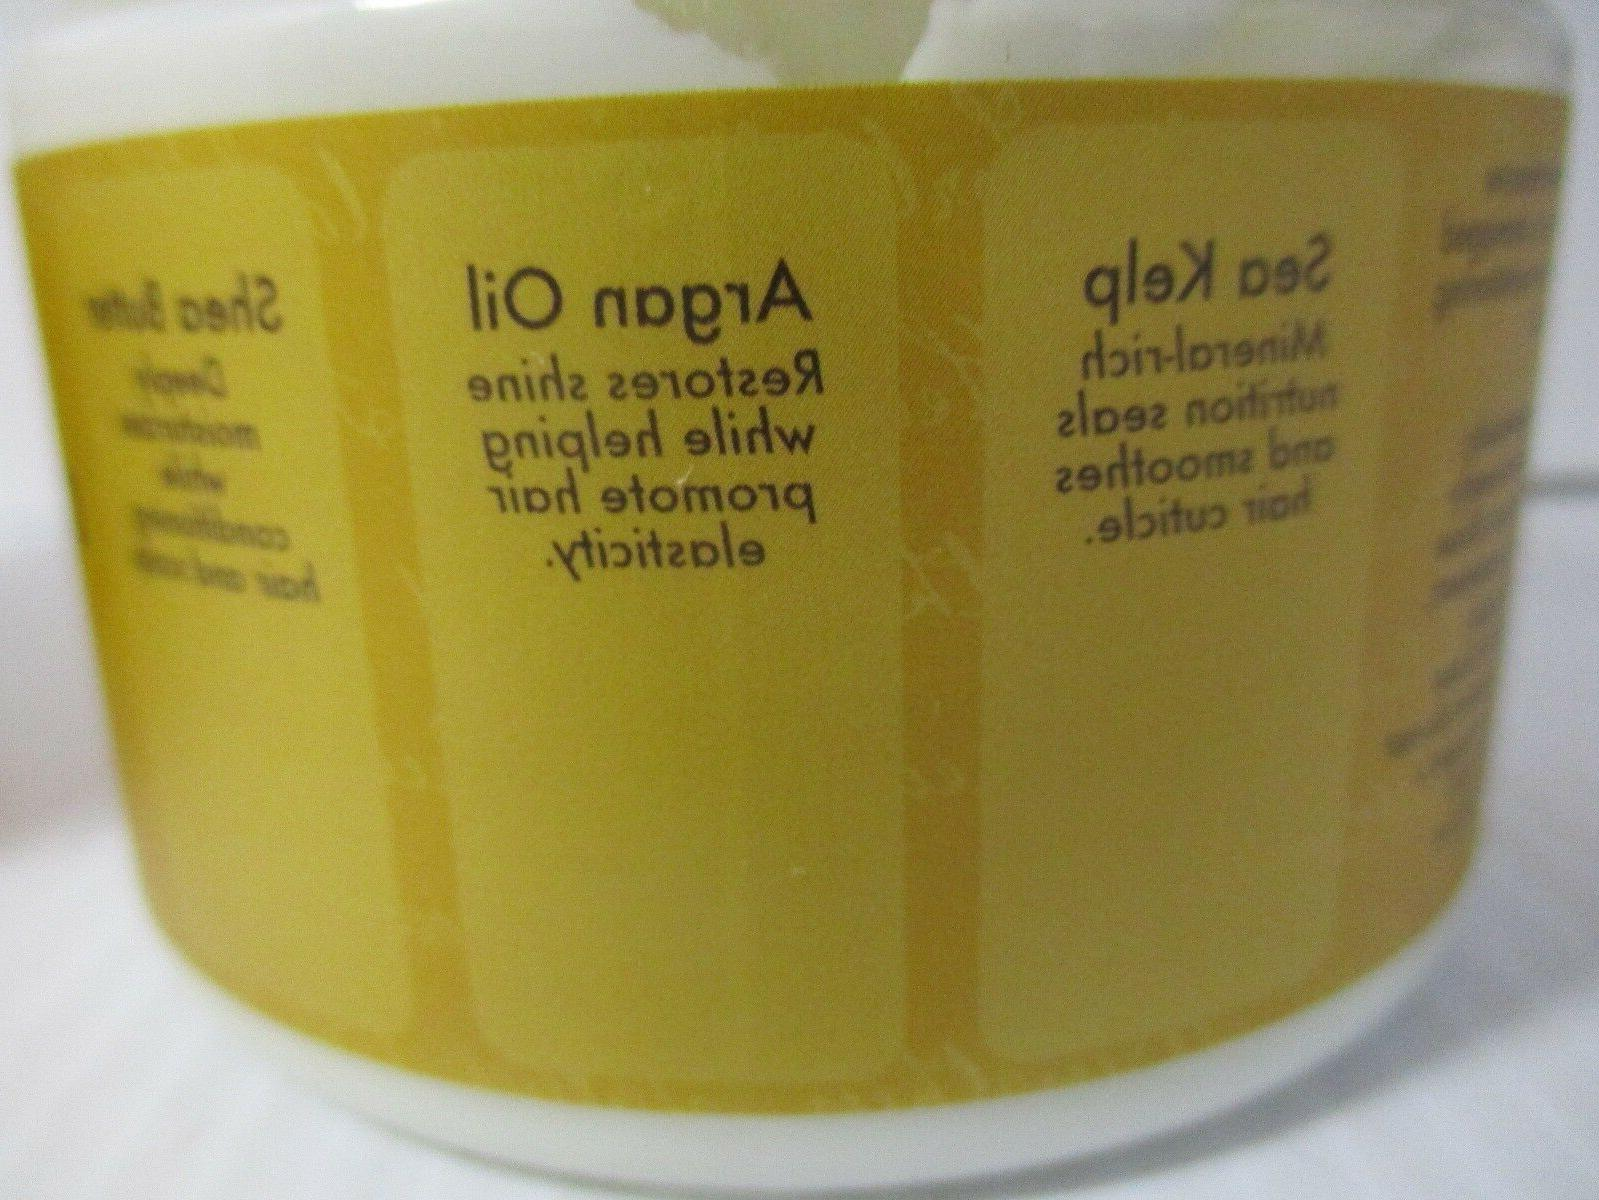 2 MOISTURE SHEA BUTTER DEEP TREATMENT MASQUE 12 EA JL 4553